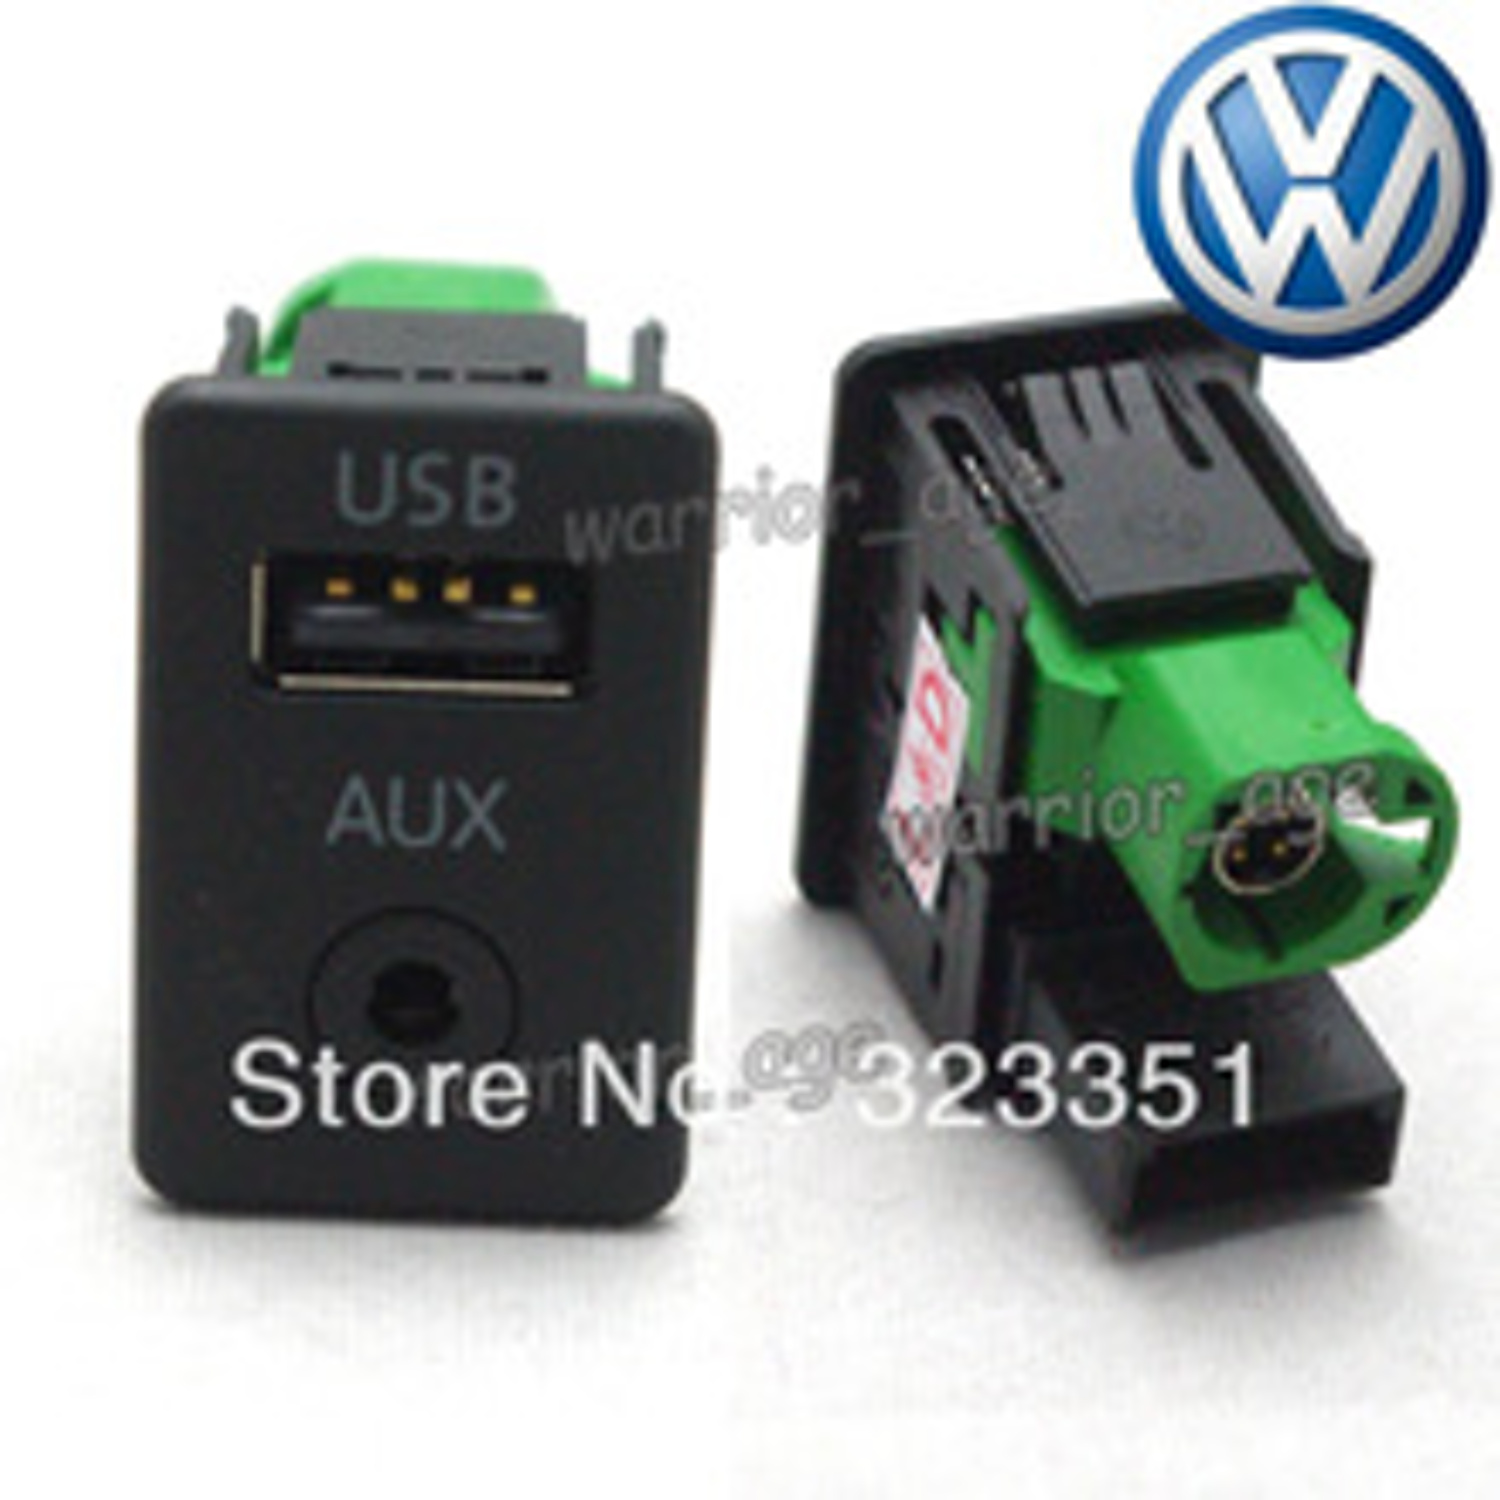 Free-Shipping-font-b-VW-b-font-ORIGINAL-USB-AUX-IN-SWITCH-Cables-FOR-font-b.jpg_220x220.jpg